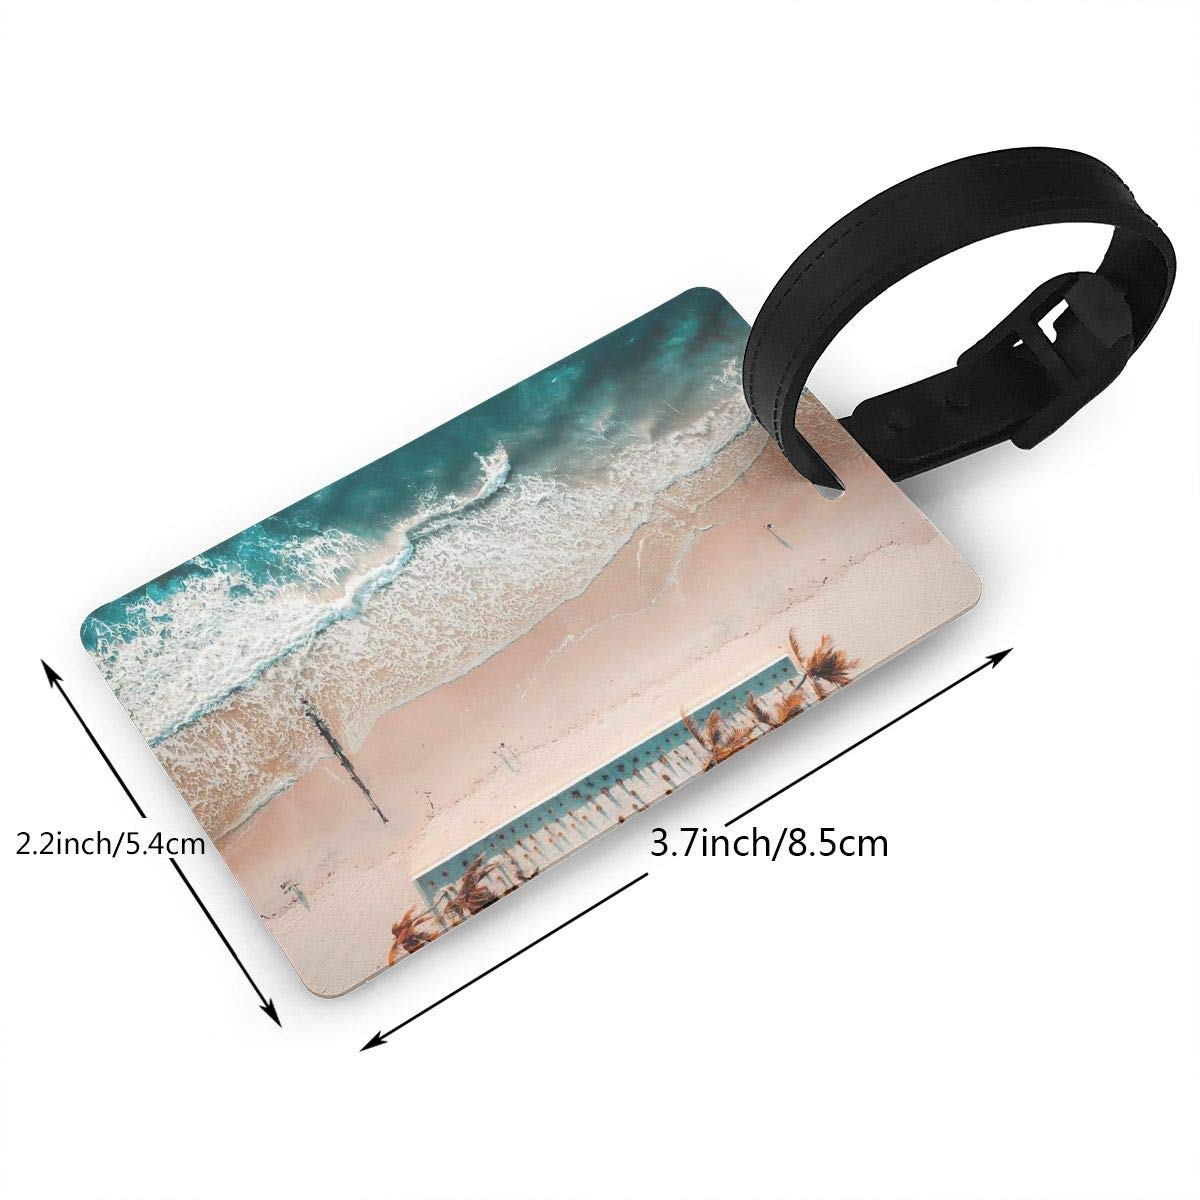 Beaches Handbag Tag For Travel Bag Suitcase Accessories 2 Pack Luggage Tags